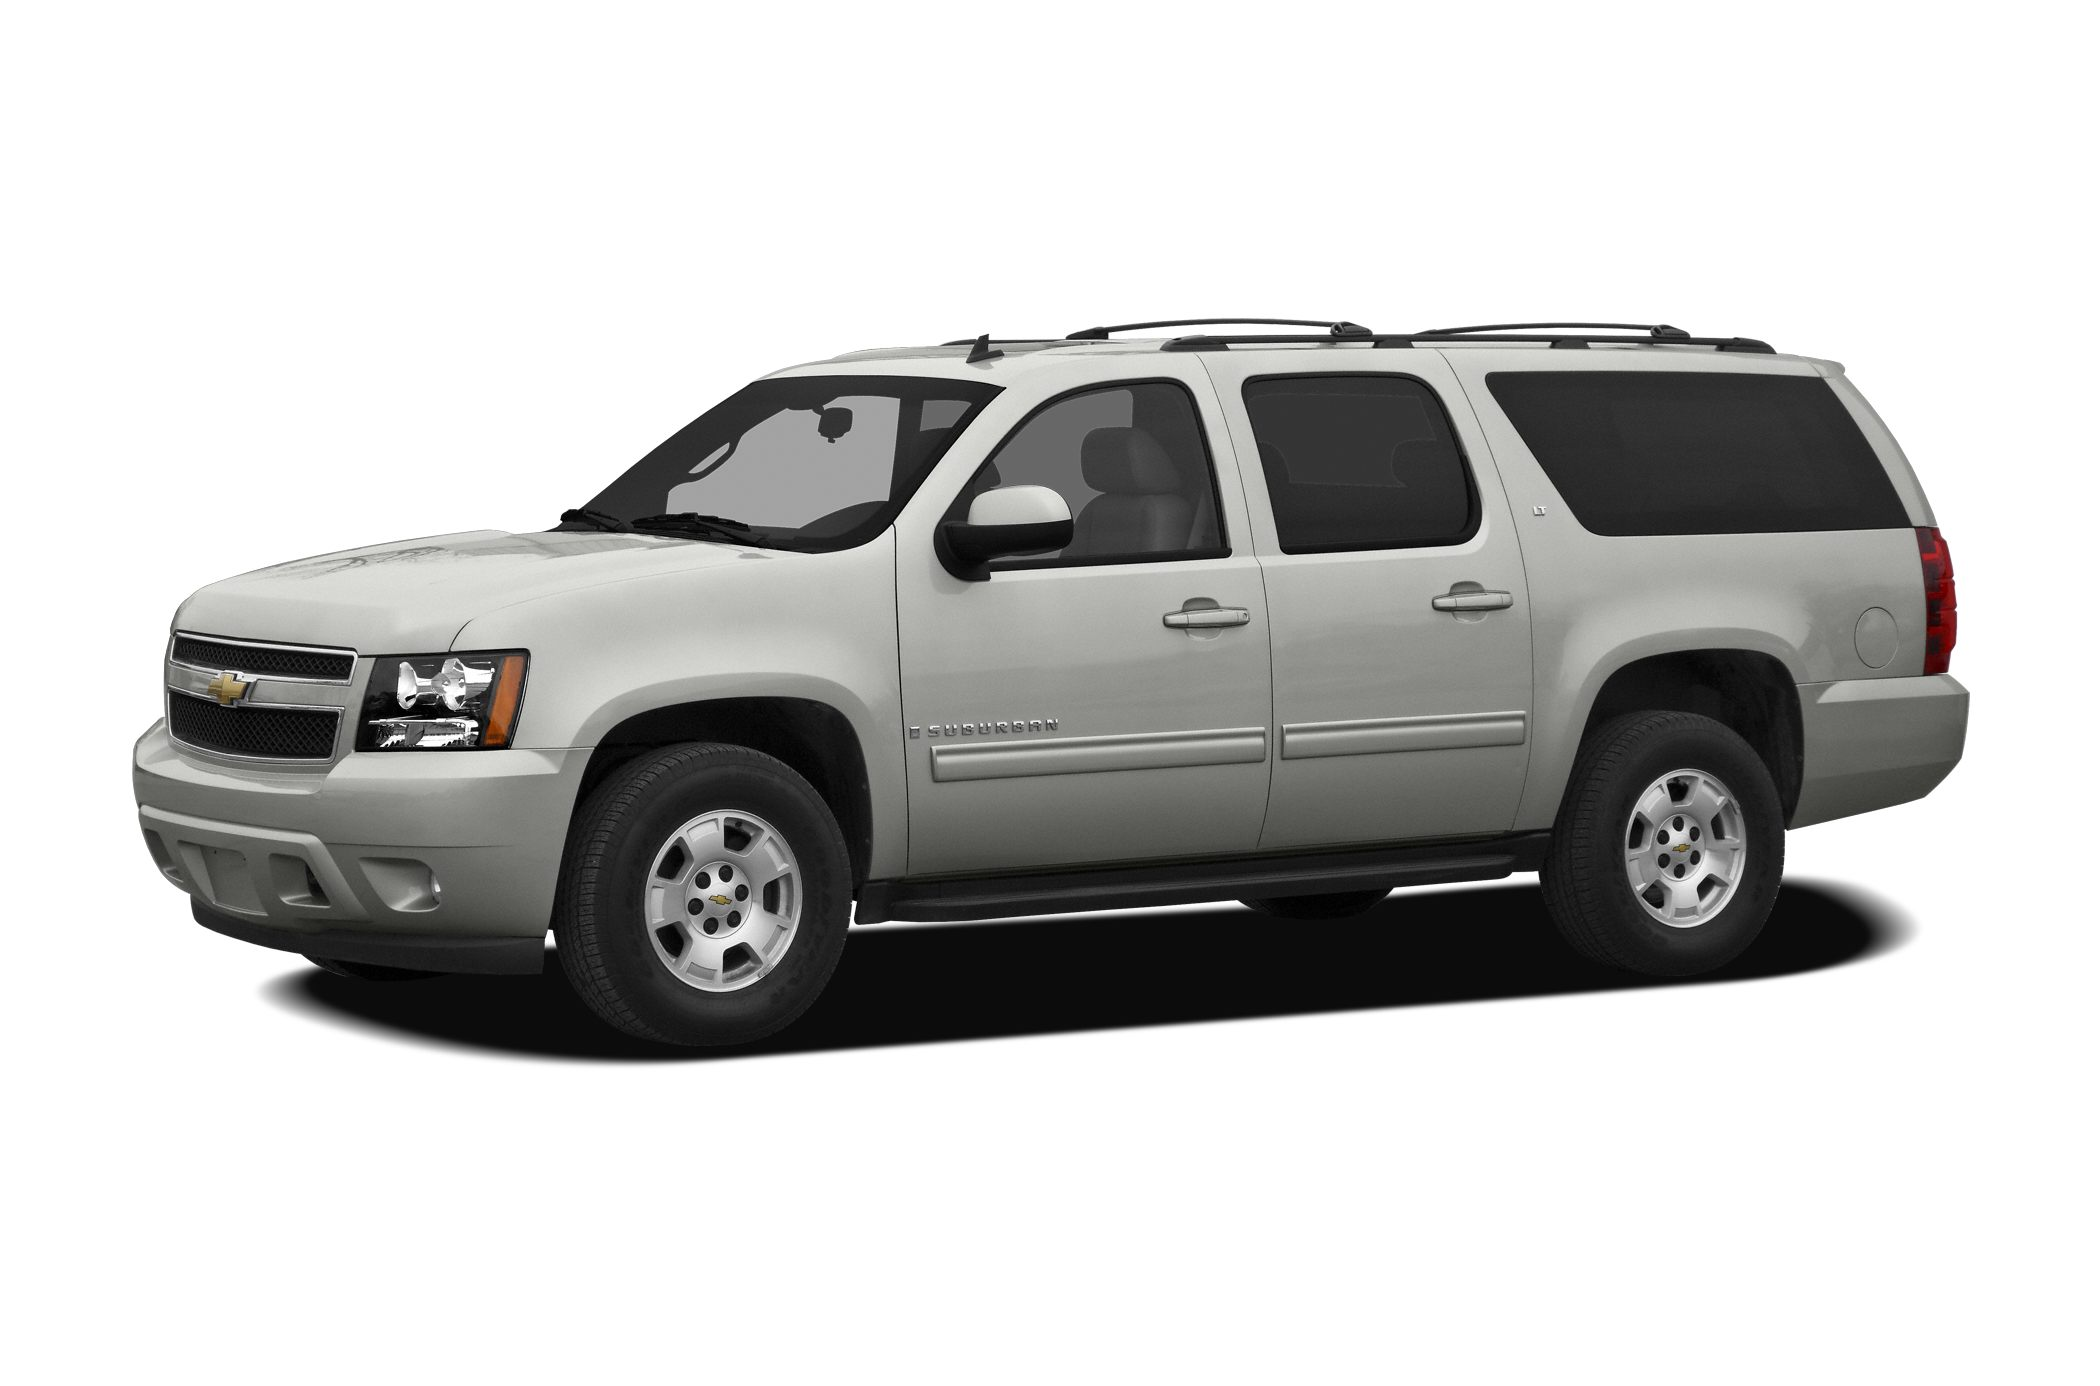 2011 Chevrolet Suburban 1500 LT SUV for sale in Batesville for $27,900 with 66,664 miles.